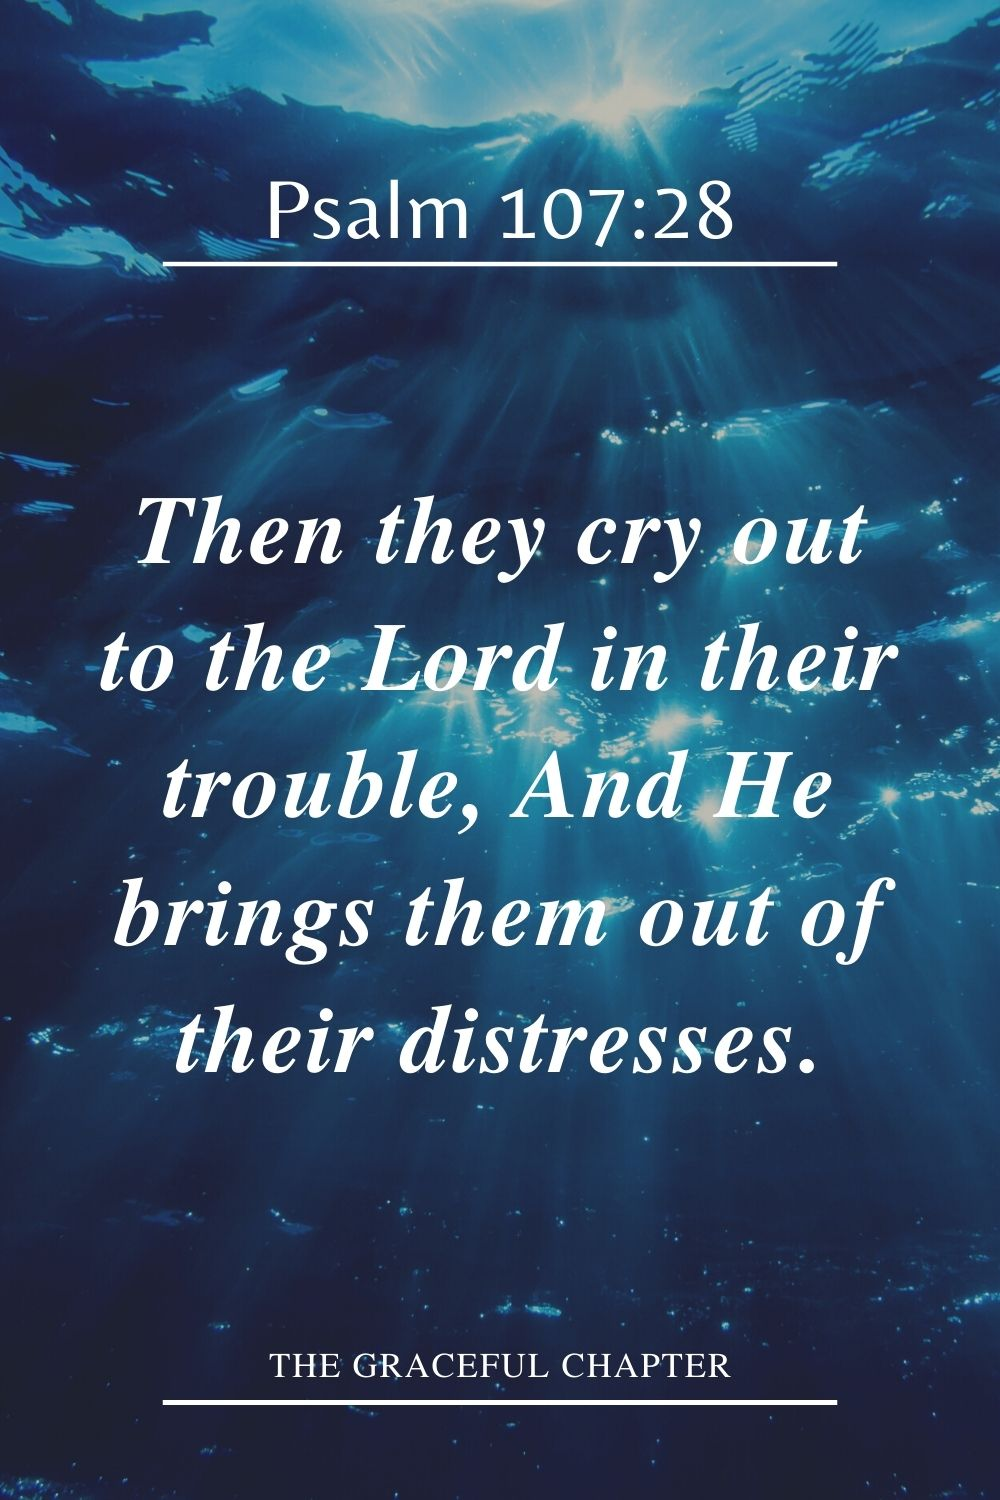 Then they cry out to the Lord in their trouble, And He brings them out of their distresses. Psalm 107:28